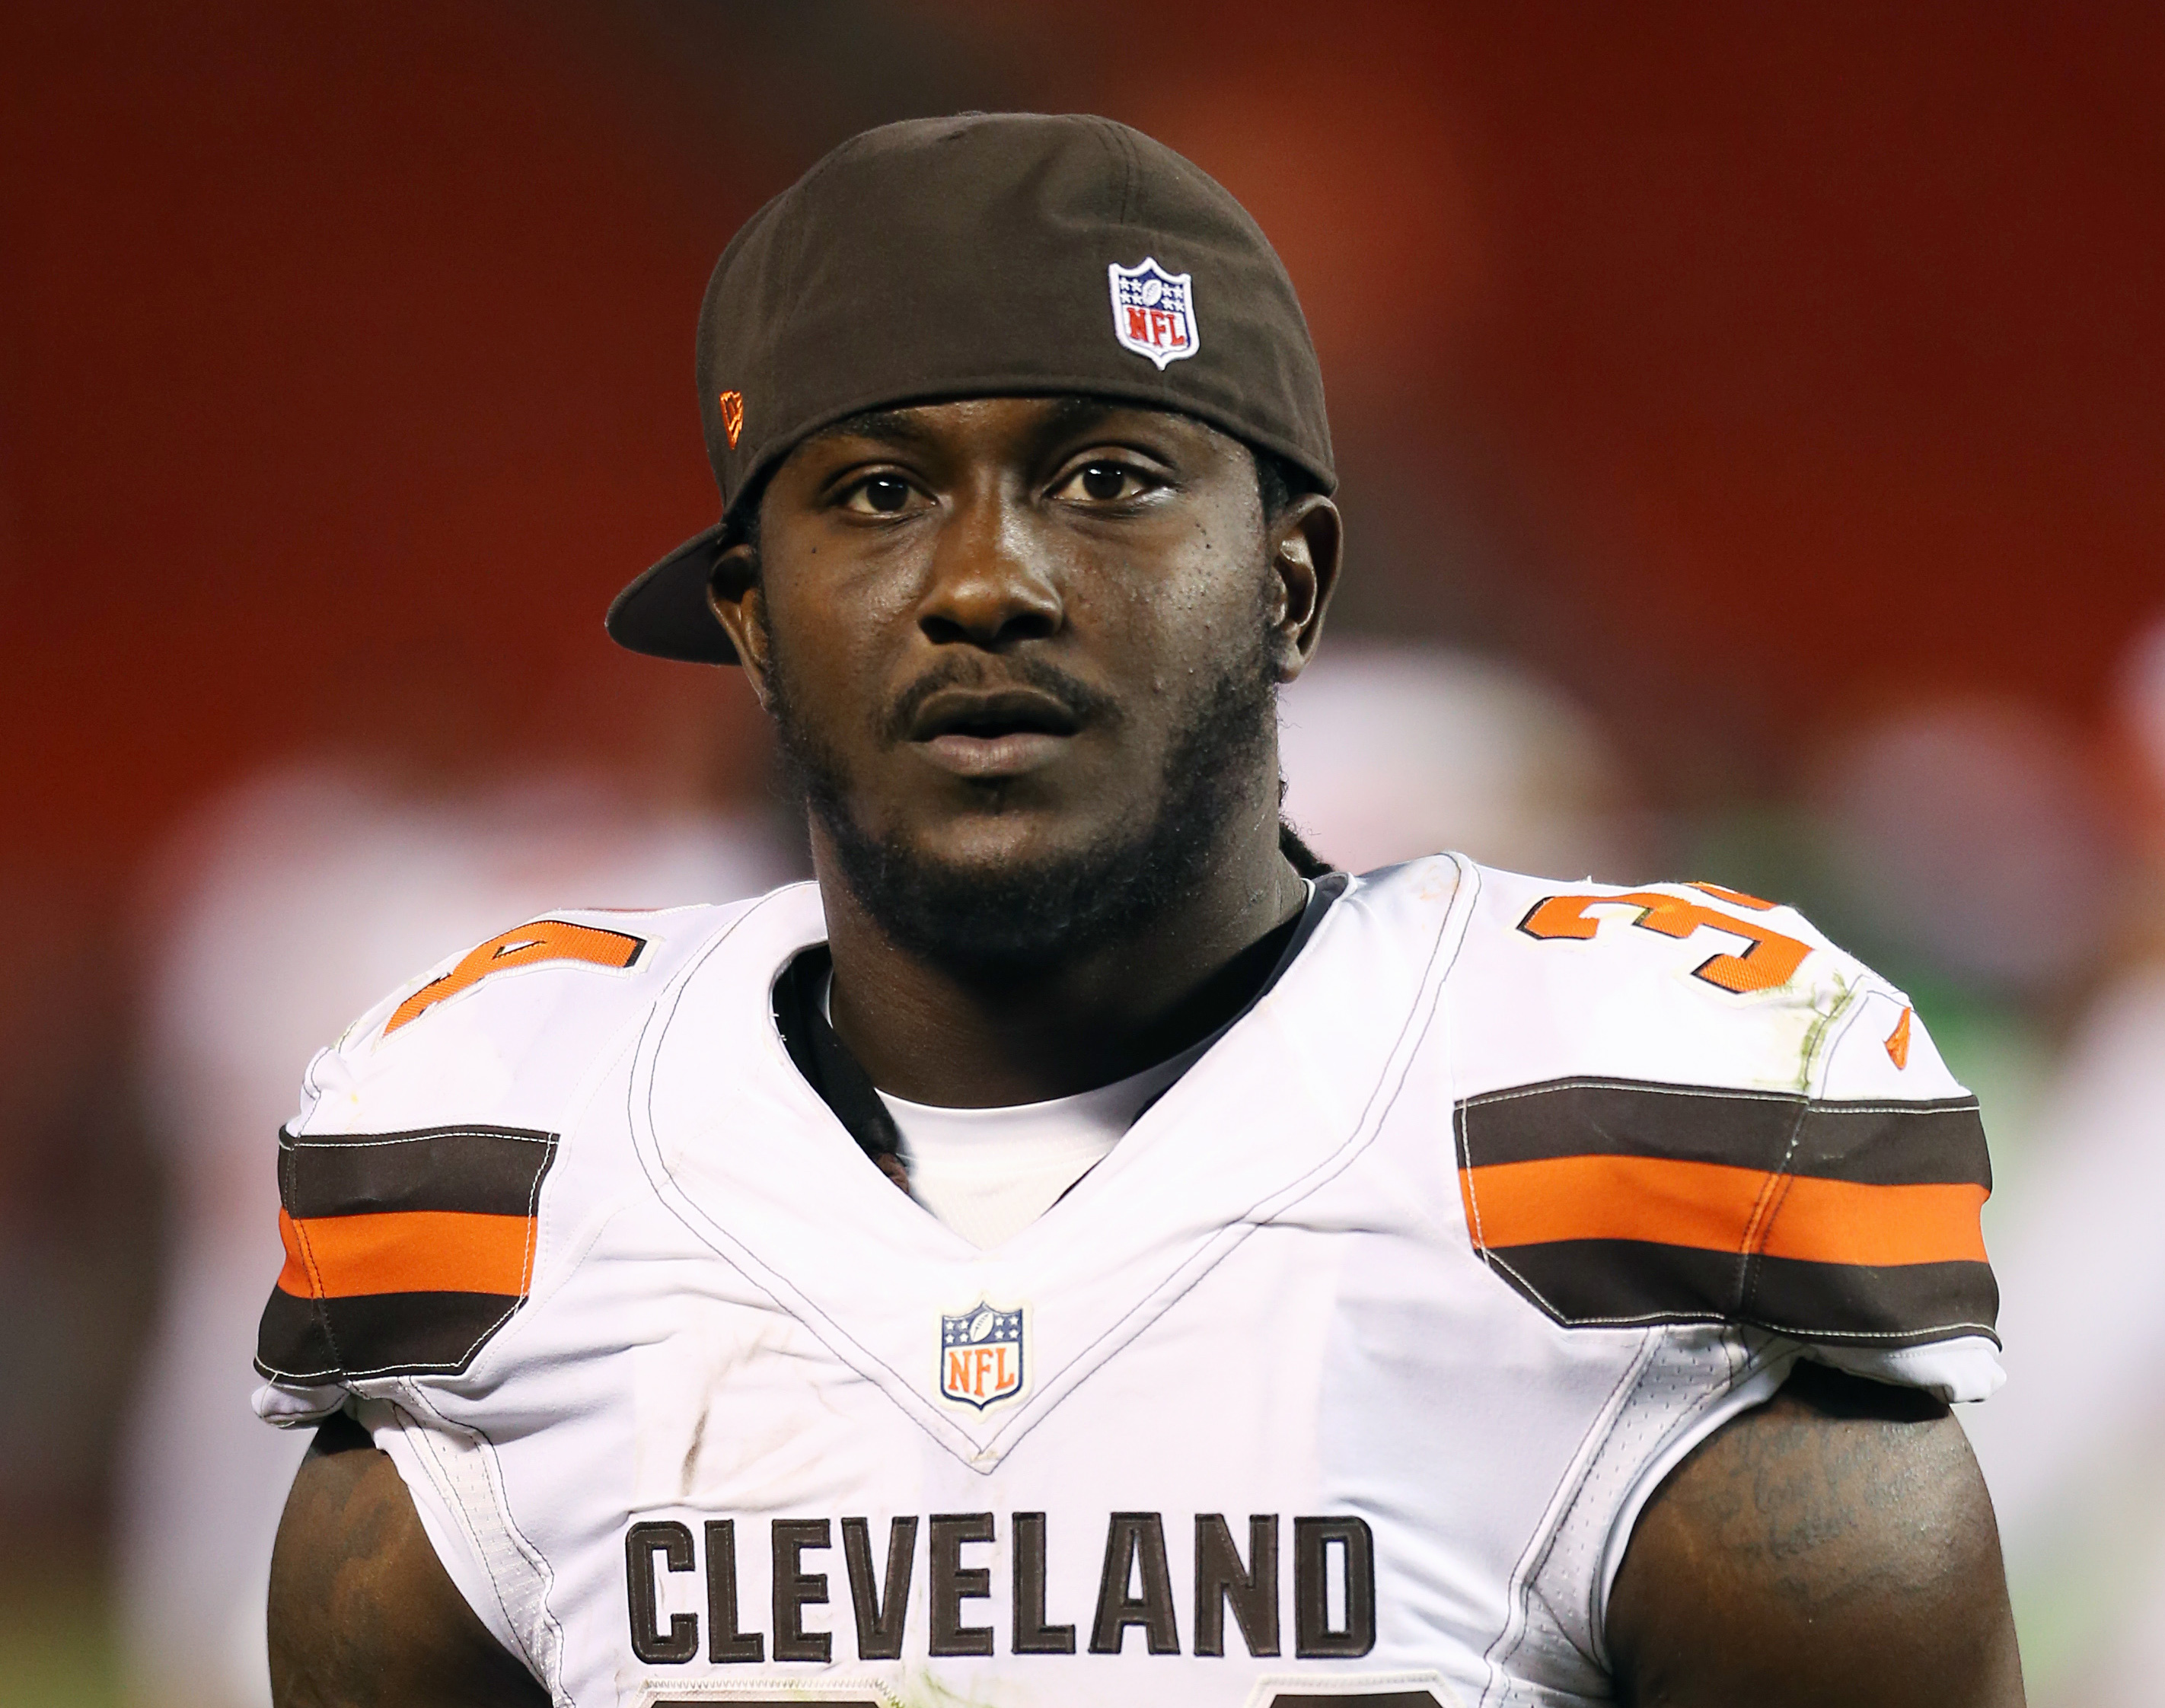 FILE - In this Aug. 13, 2015, file photo, Cleveland Browns running back Isaiah Crowell (34) is shown during an NFL preseason football game against the Washington Redskins in Cleveland. Crowell says he will donate about $35,000 to a fallen officers' fund i